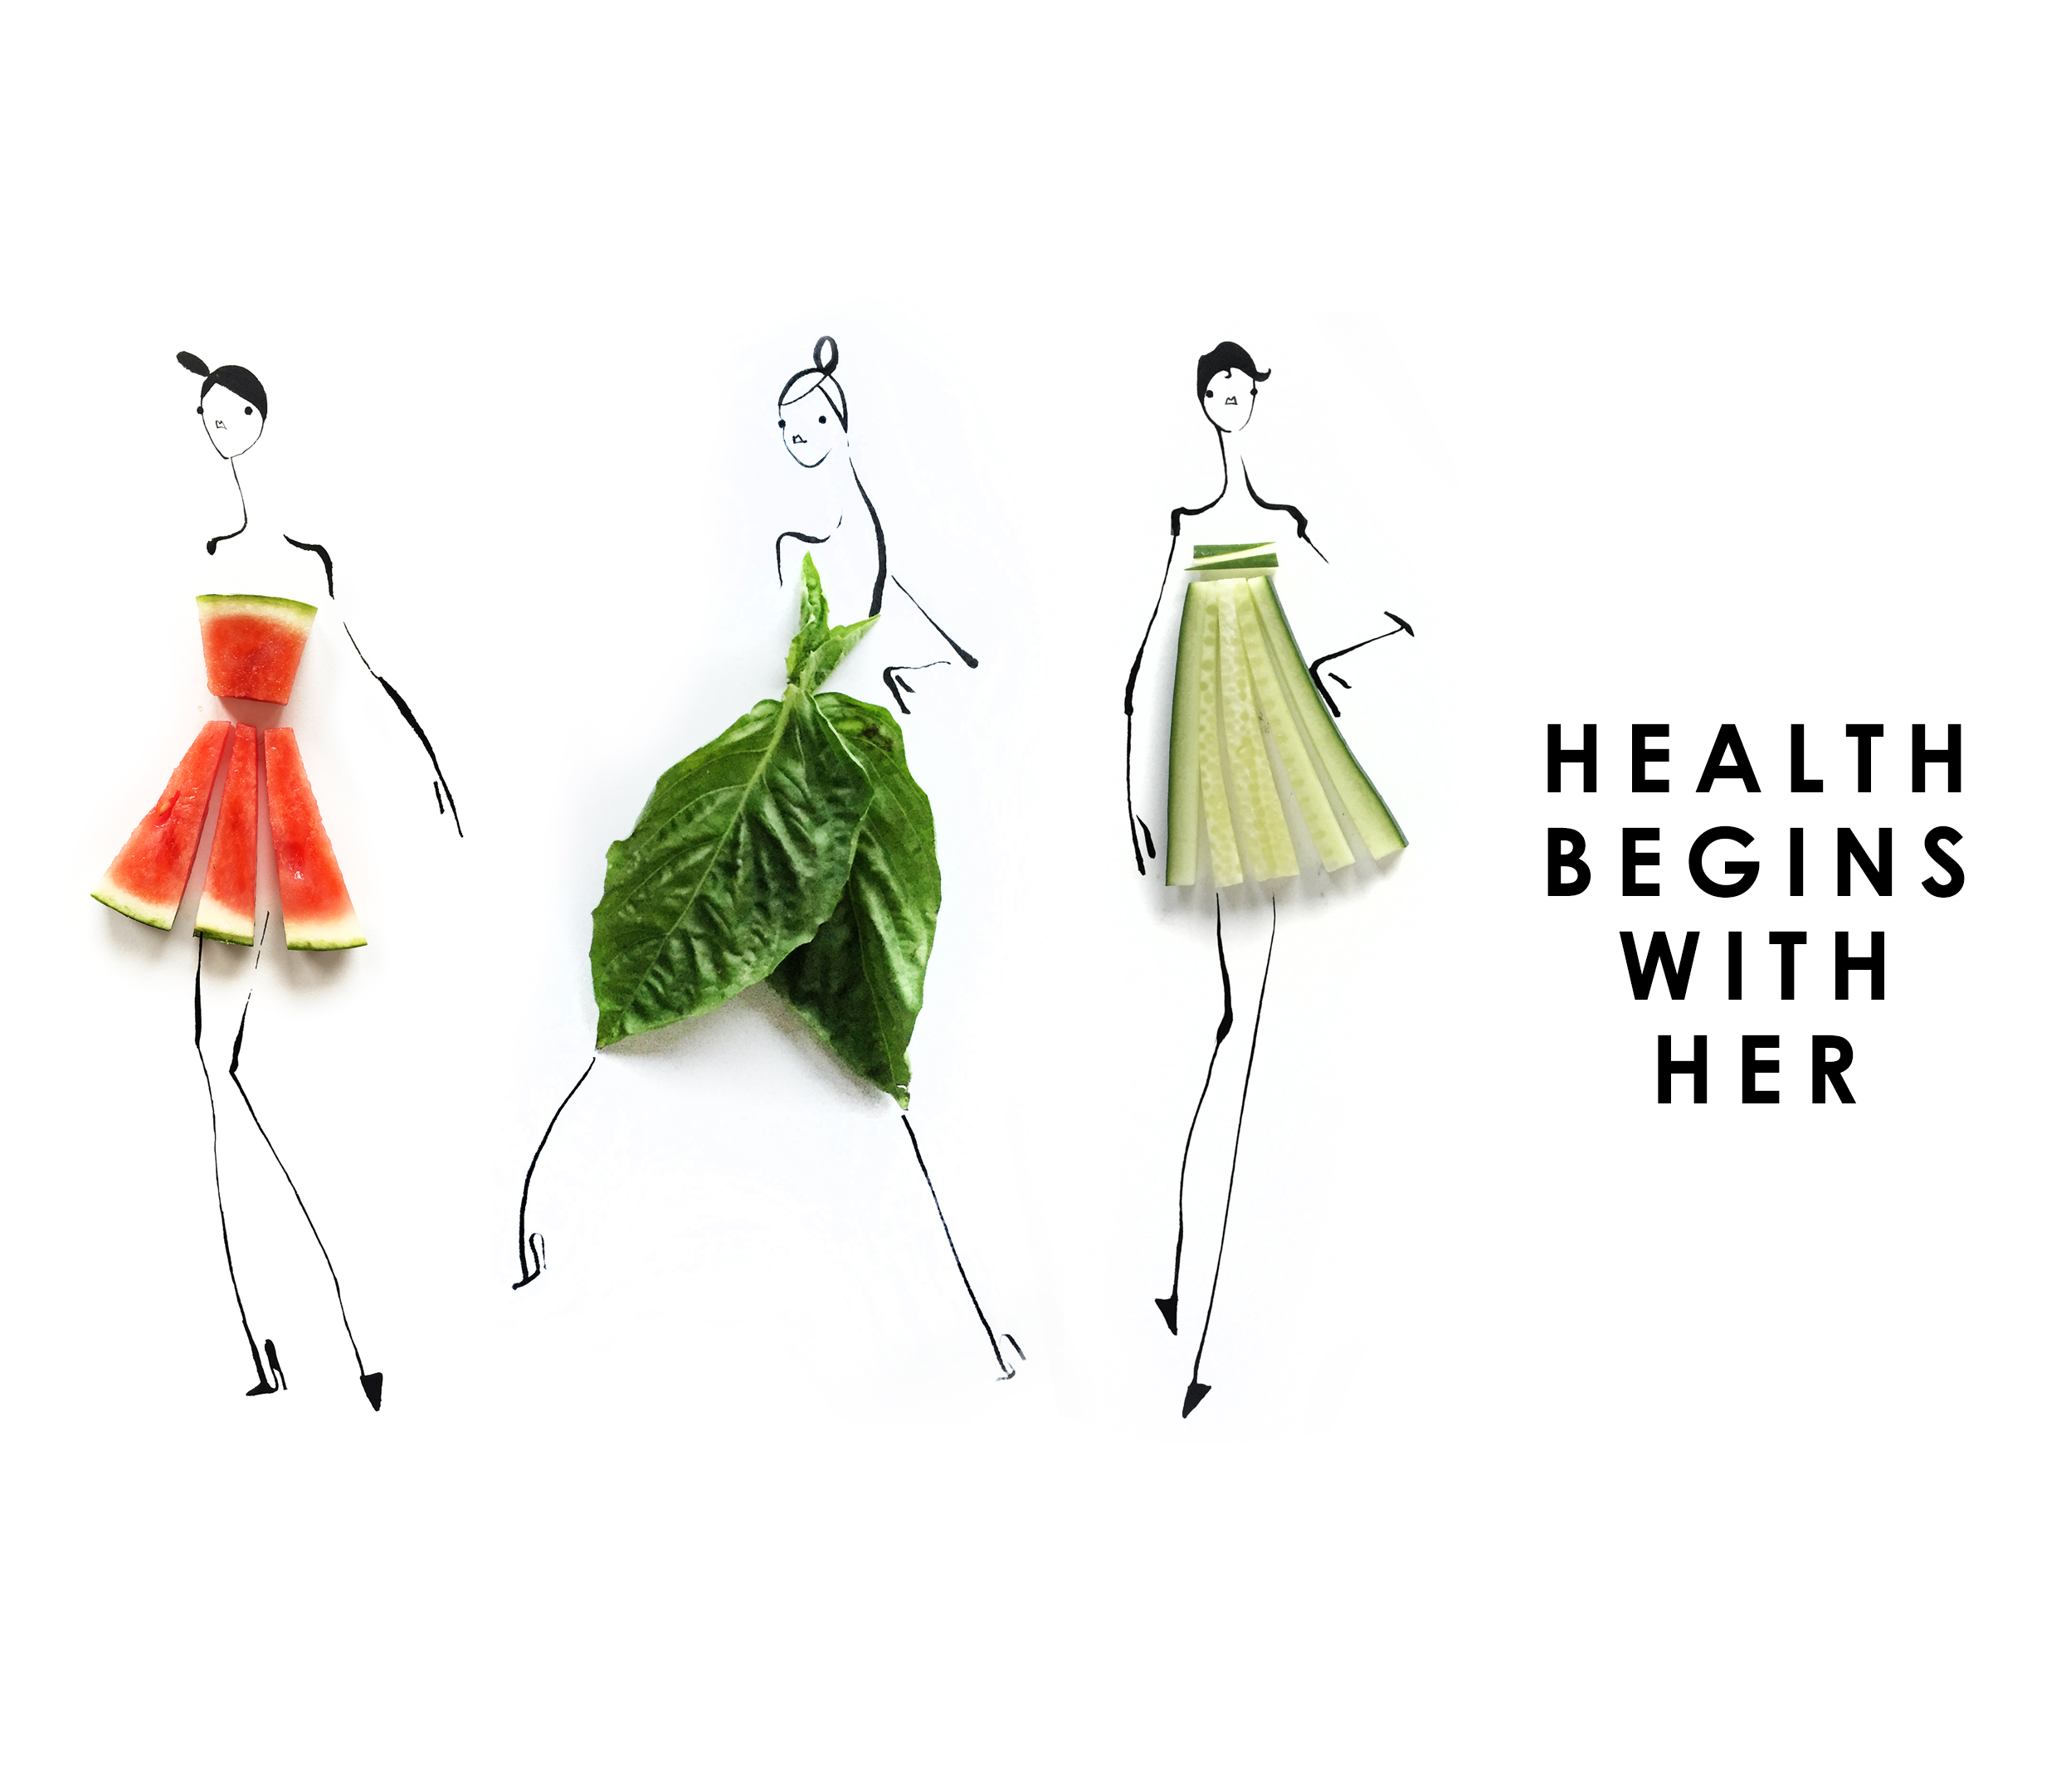 Health Begins With Her